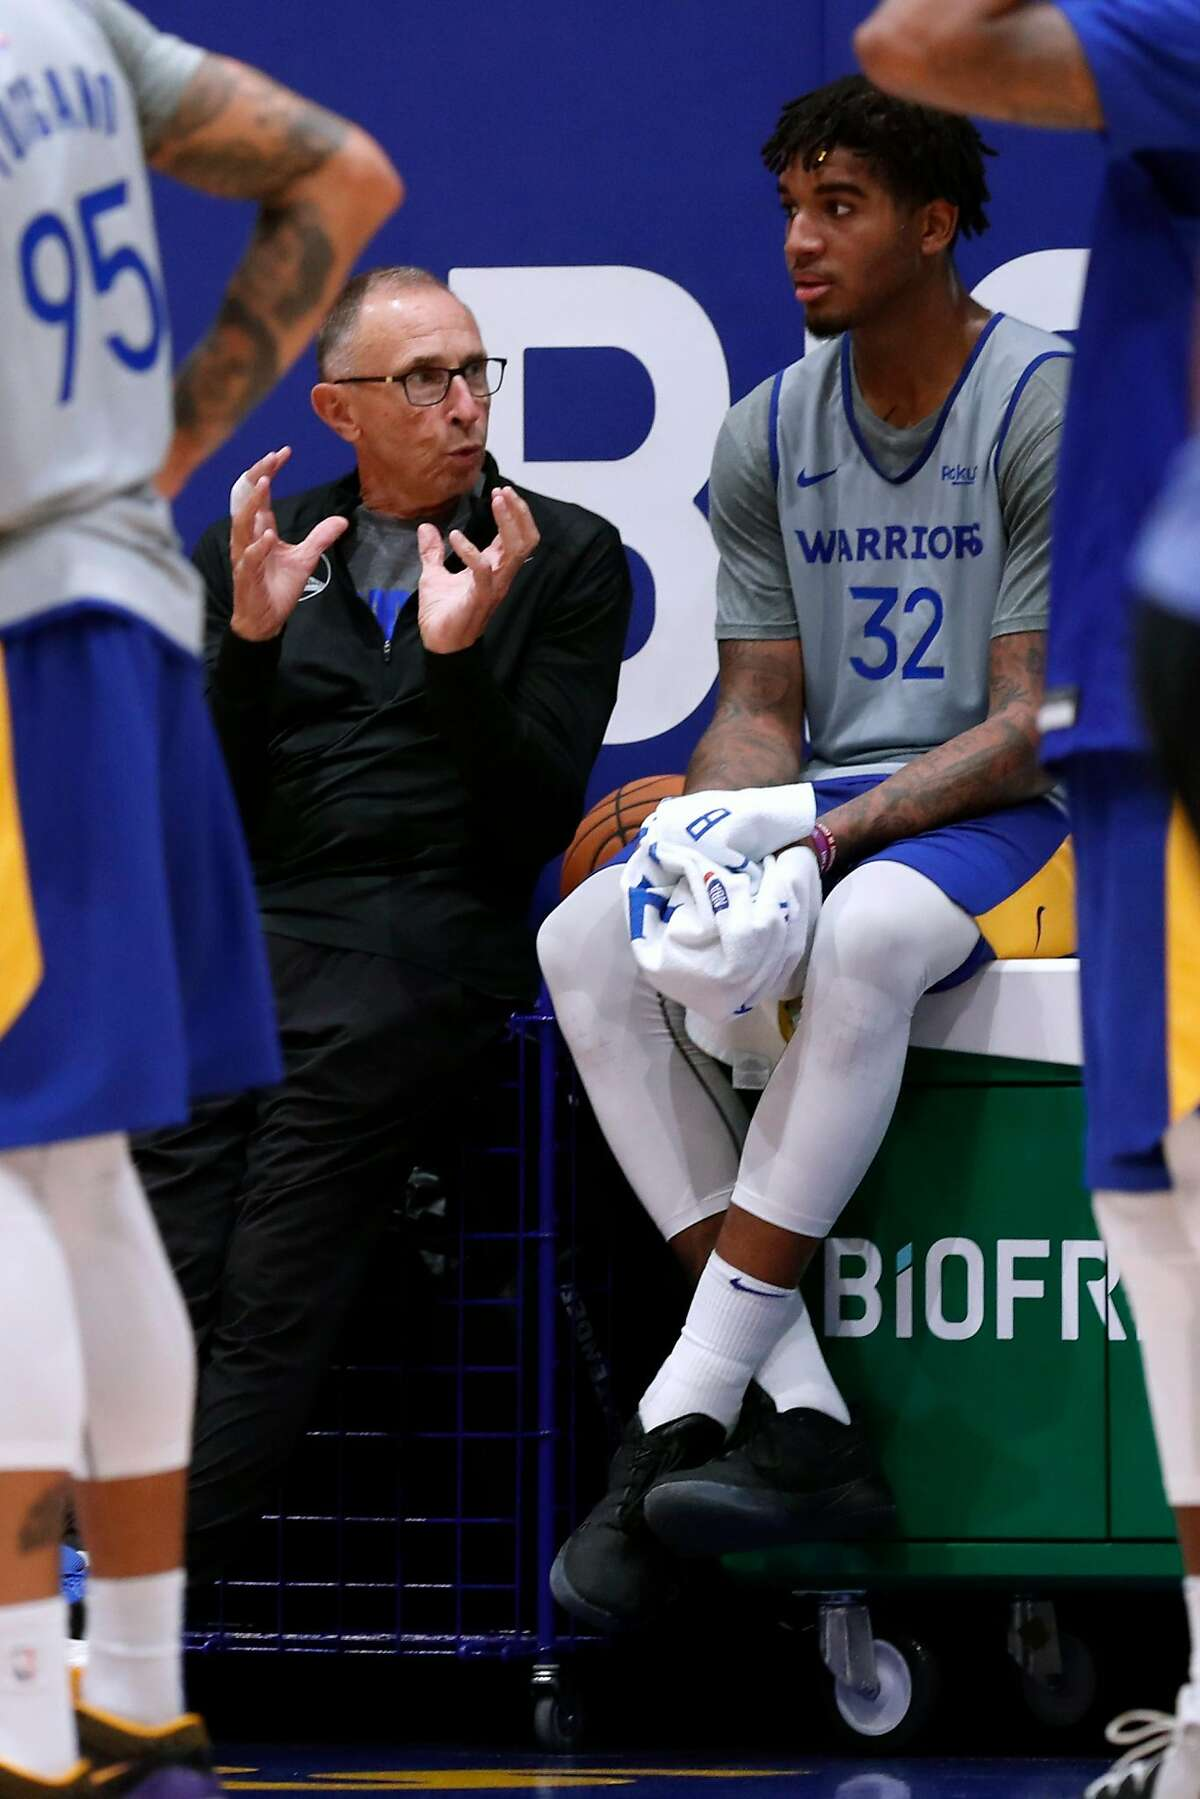 Golden State Warriors' assistant coach Ron Adams instructs Marquese Chriss during training camp at Chase Center in San Francisco, Calif., on Tuesday, October 1, 2019.